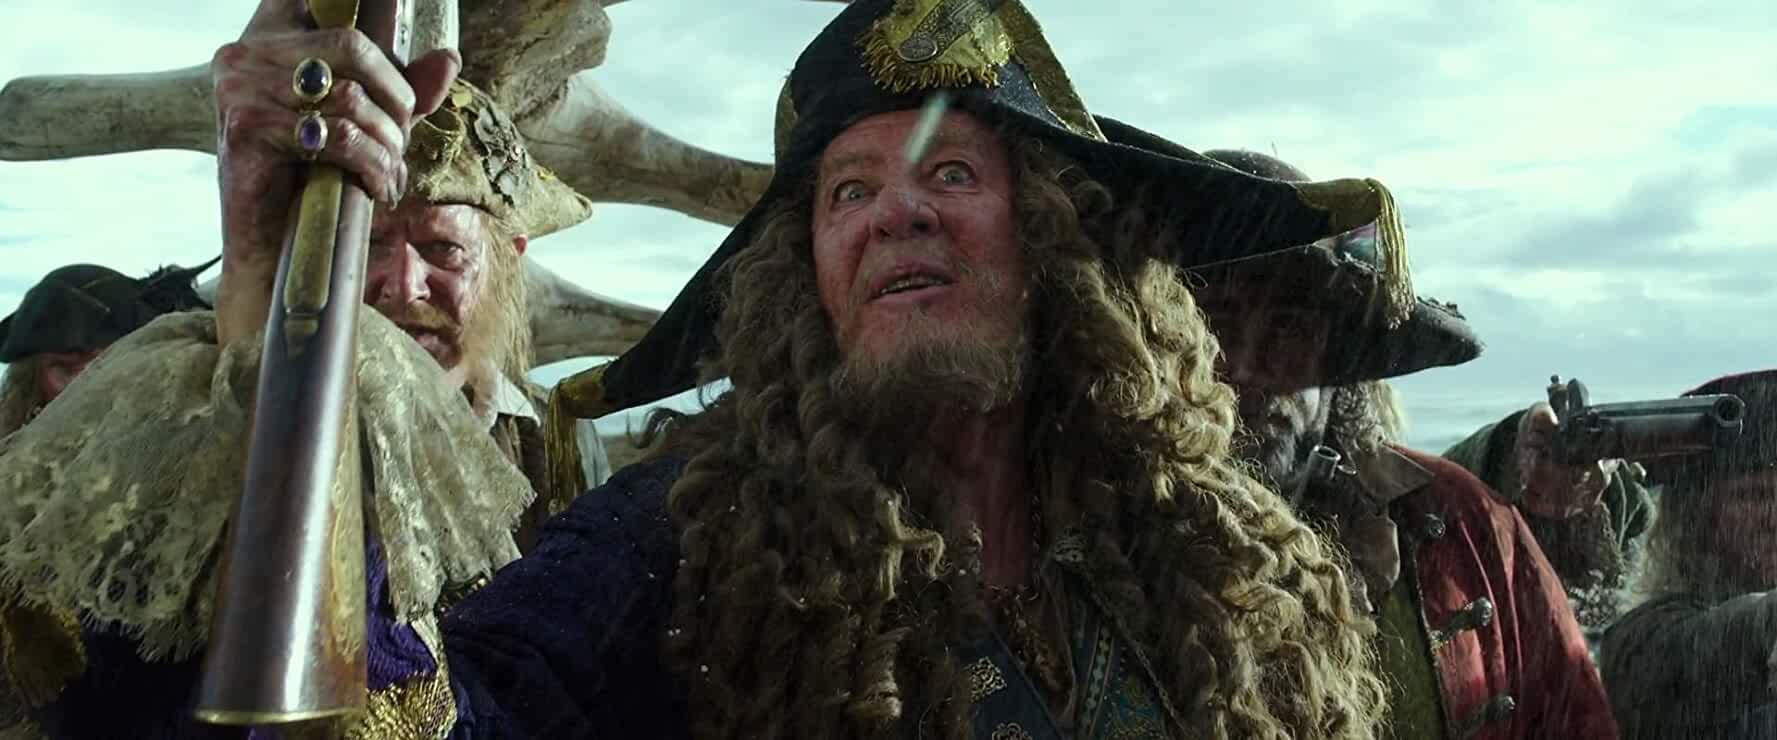 Geoffrey Rush, Angus Barnett, and Giles New in Pirates of the Caribbean: Dead Men Tell No Tales (2017)